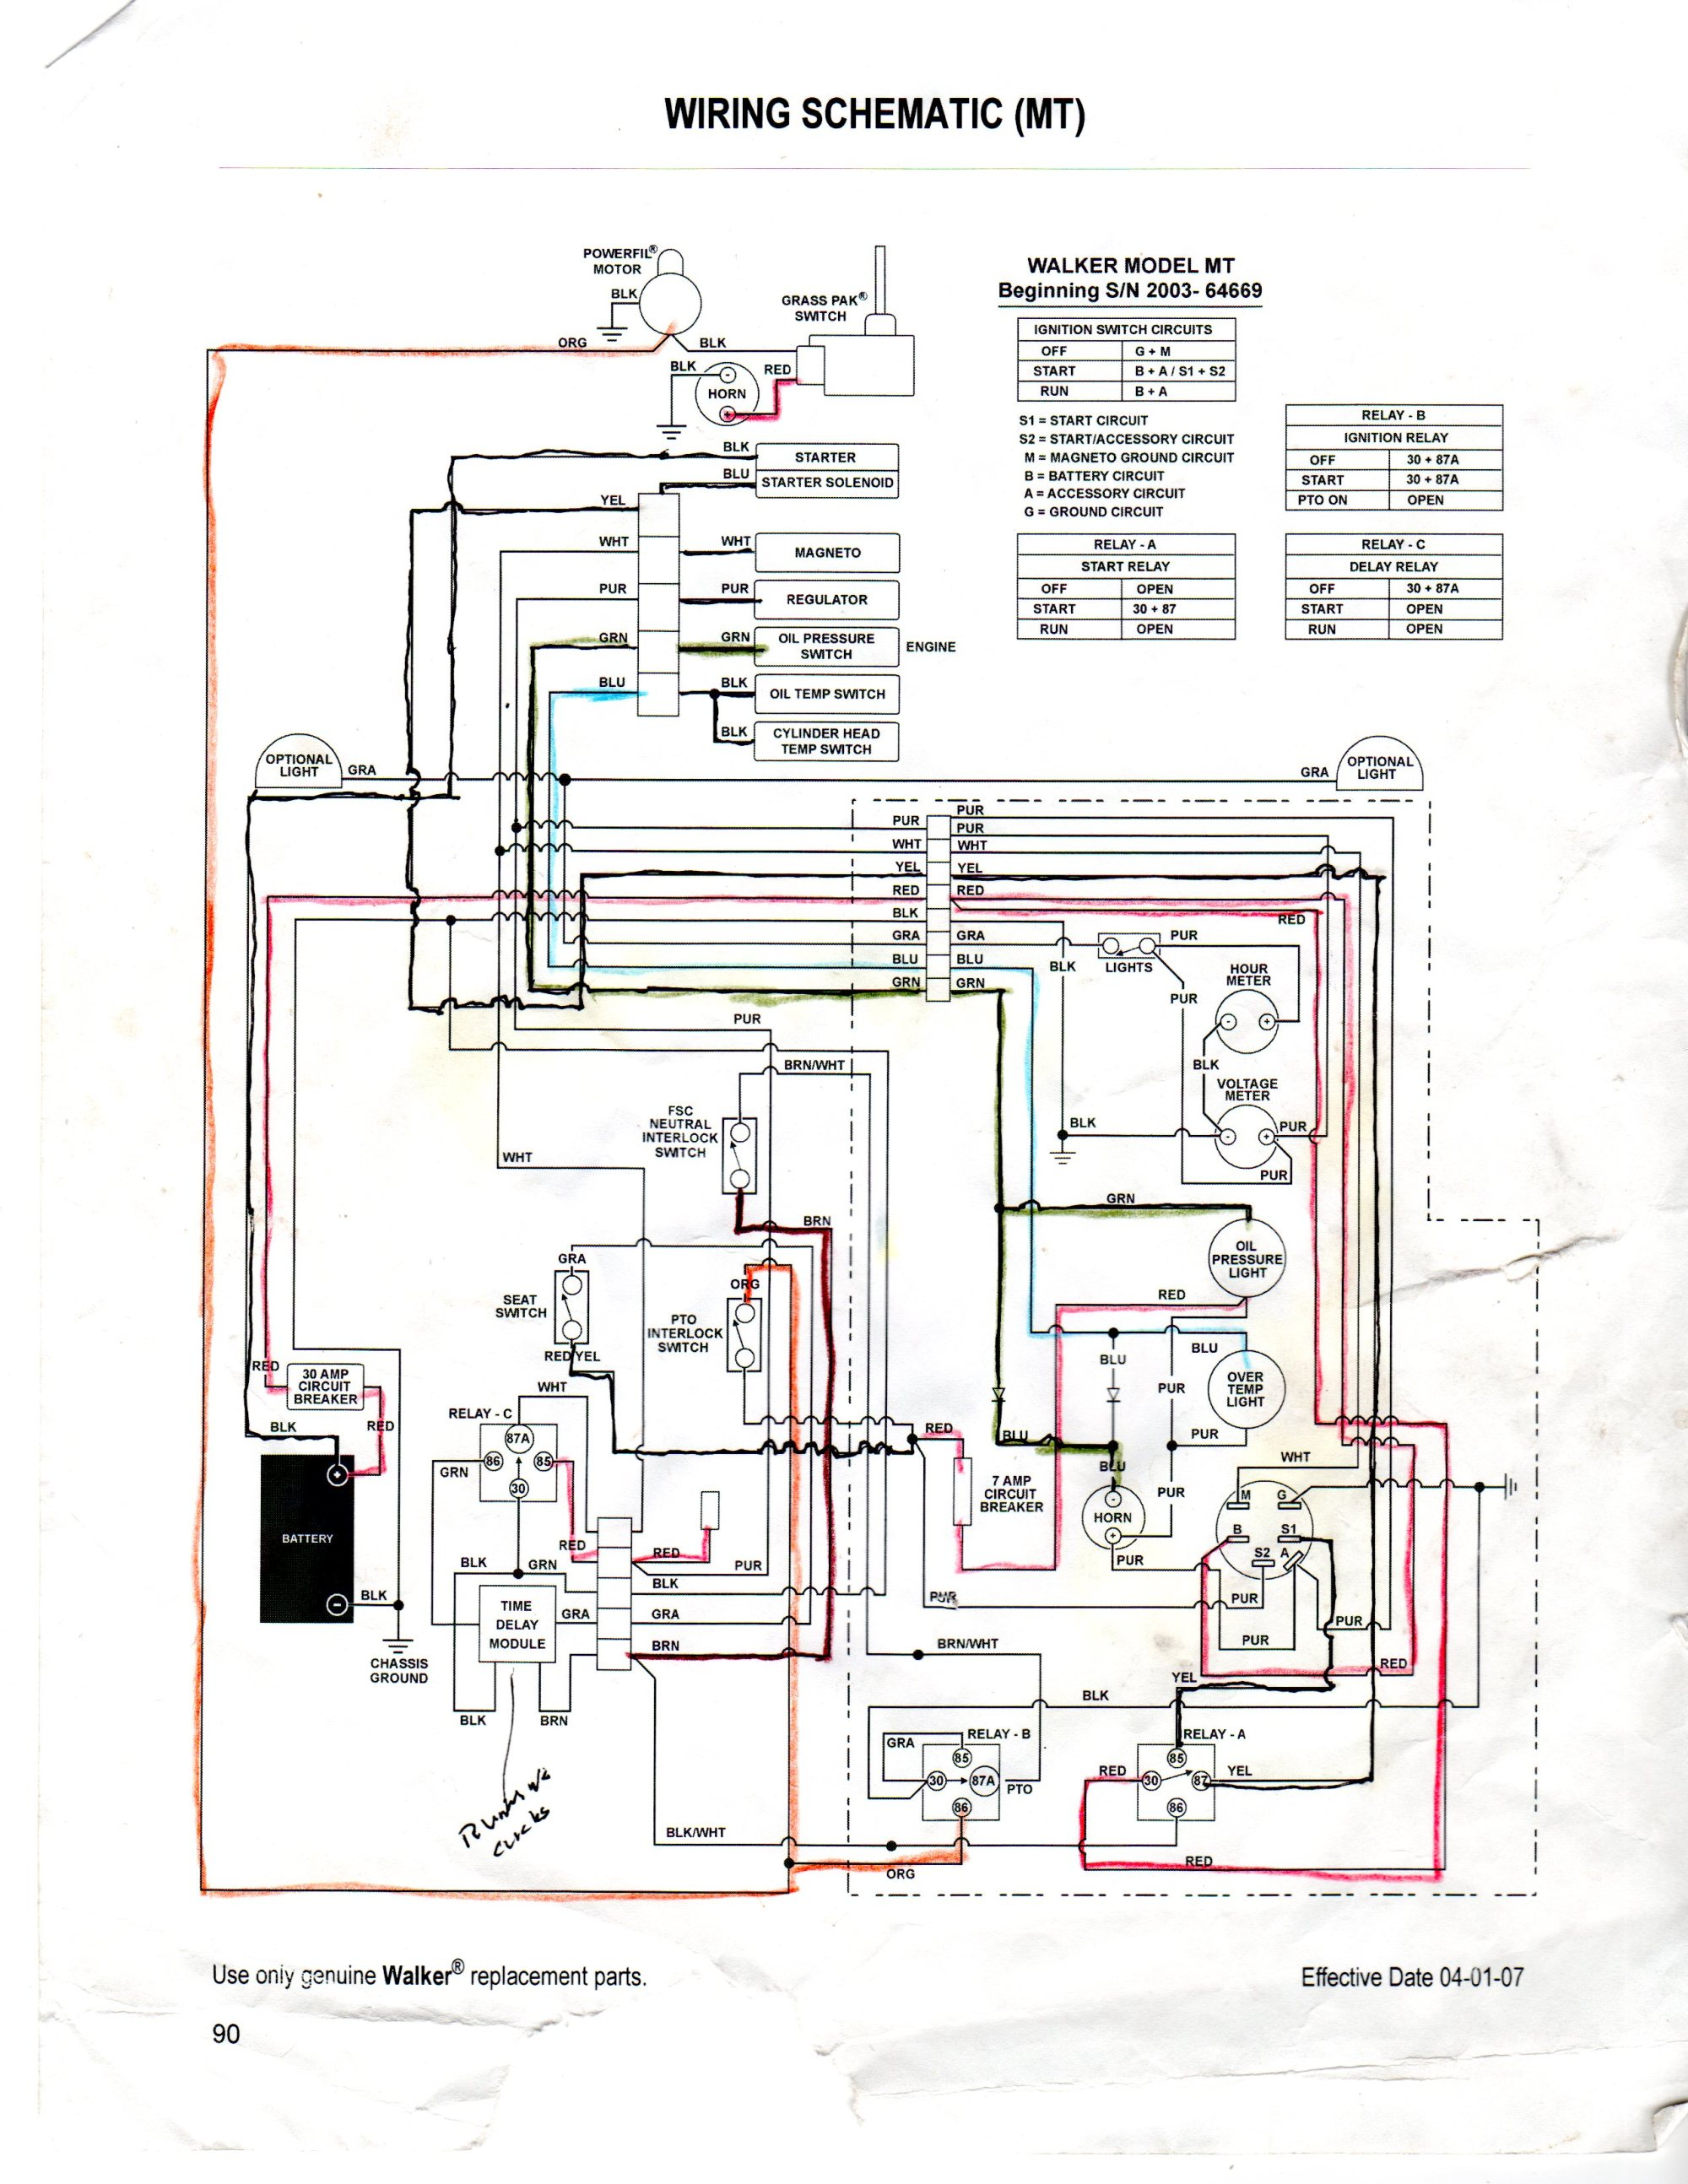 hight resolution of  2013 03 23 021910 img005 wiring diagram for cub cadet zero turn the wiring diagram cub cadet ltx